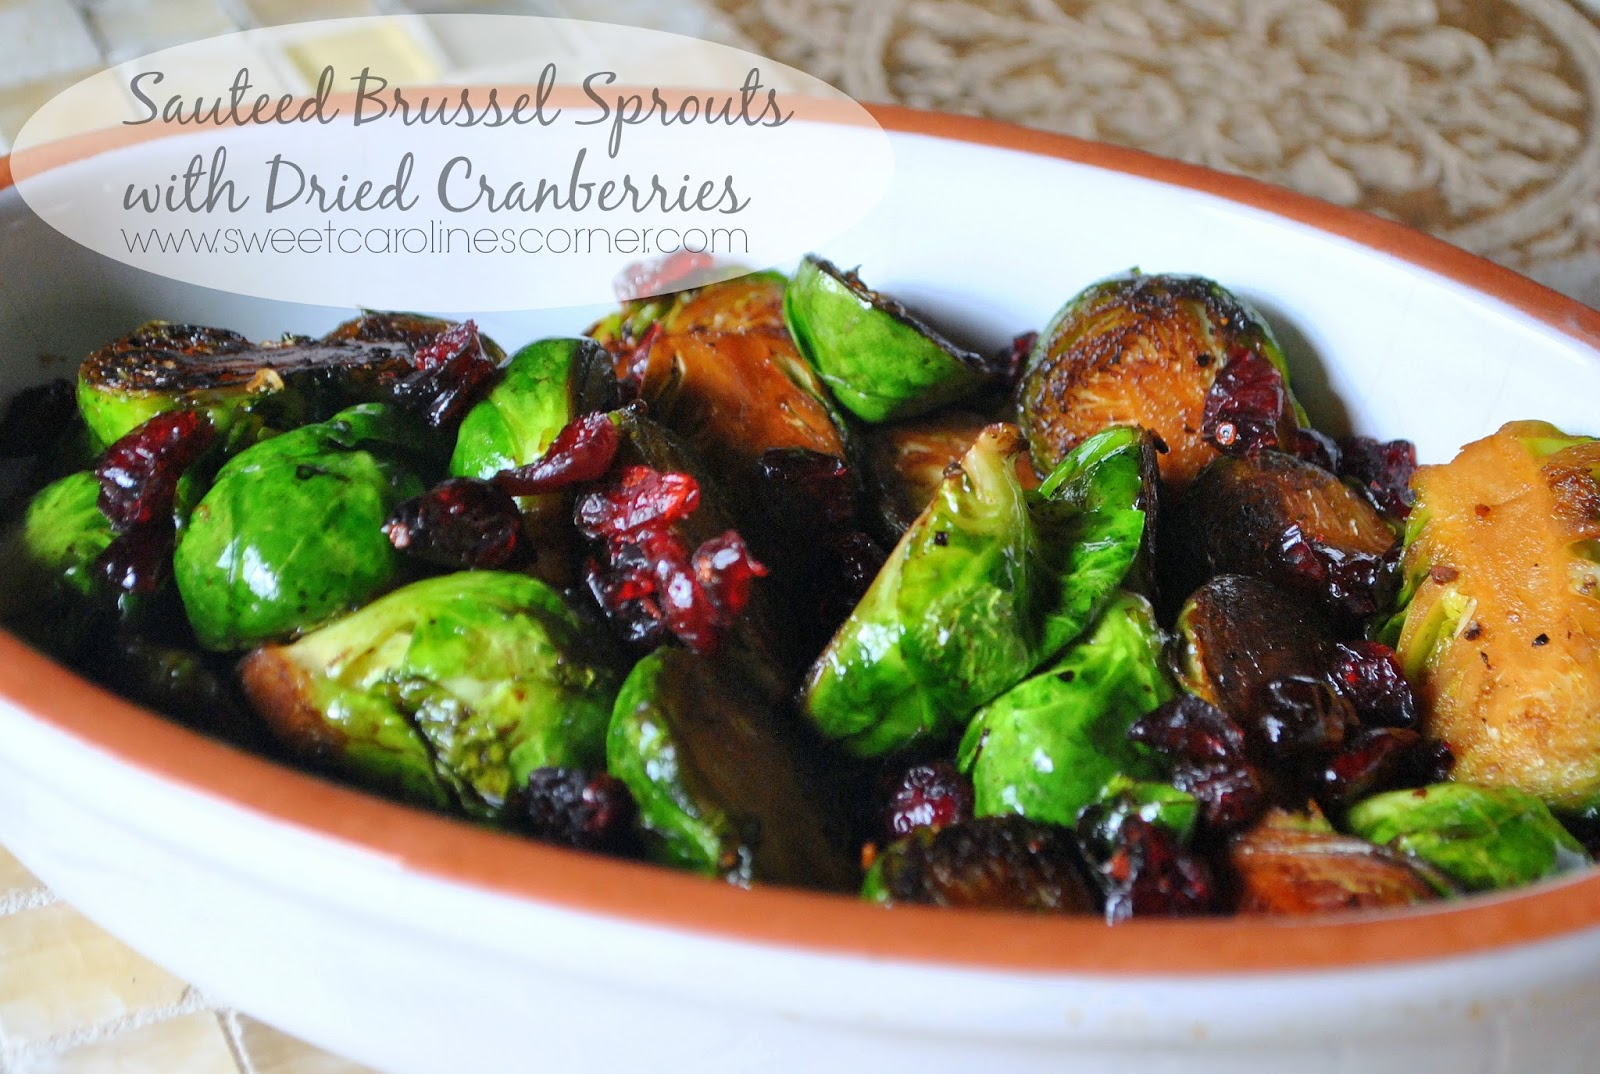 sautéed brussels sprouts with dried cranberries (couves de bruxelas com cranberries secas)